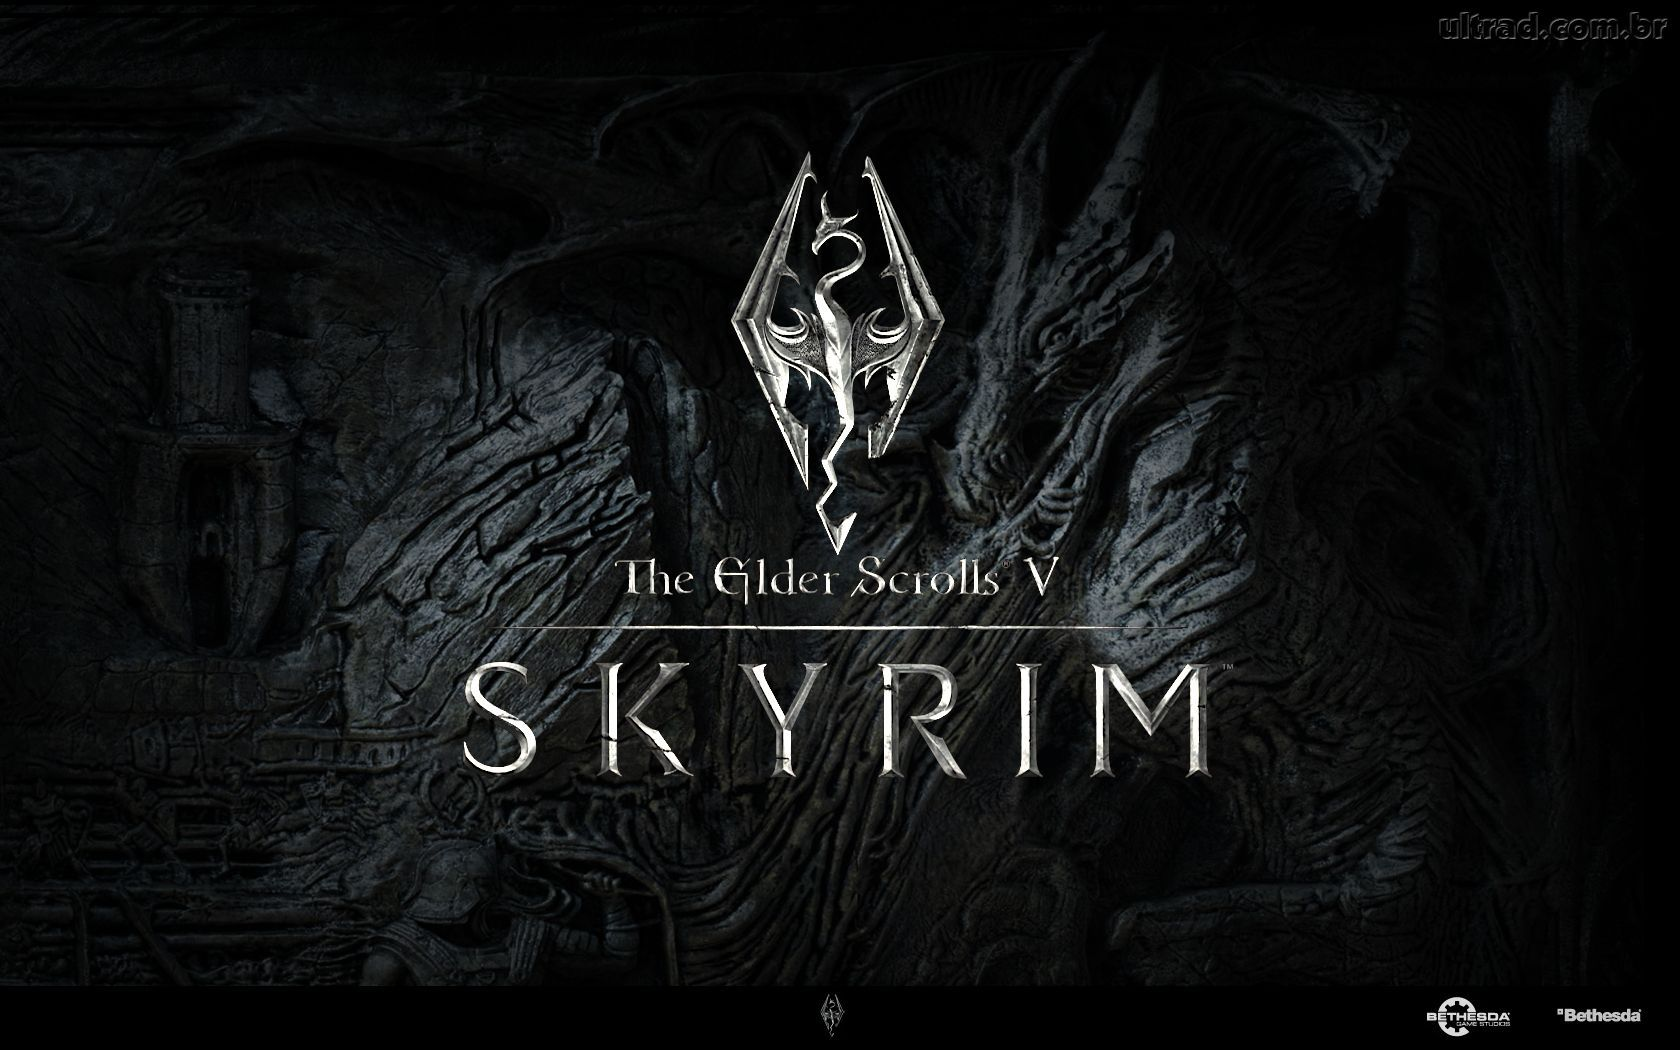 The Elder Scrolls V: Skyrim Wallpapers Images Photos ...